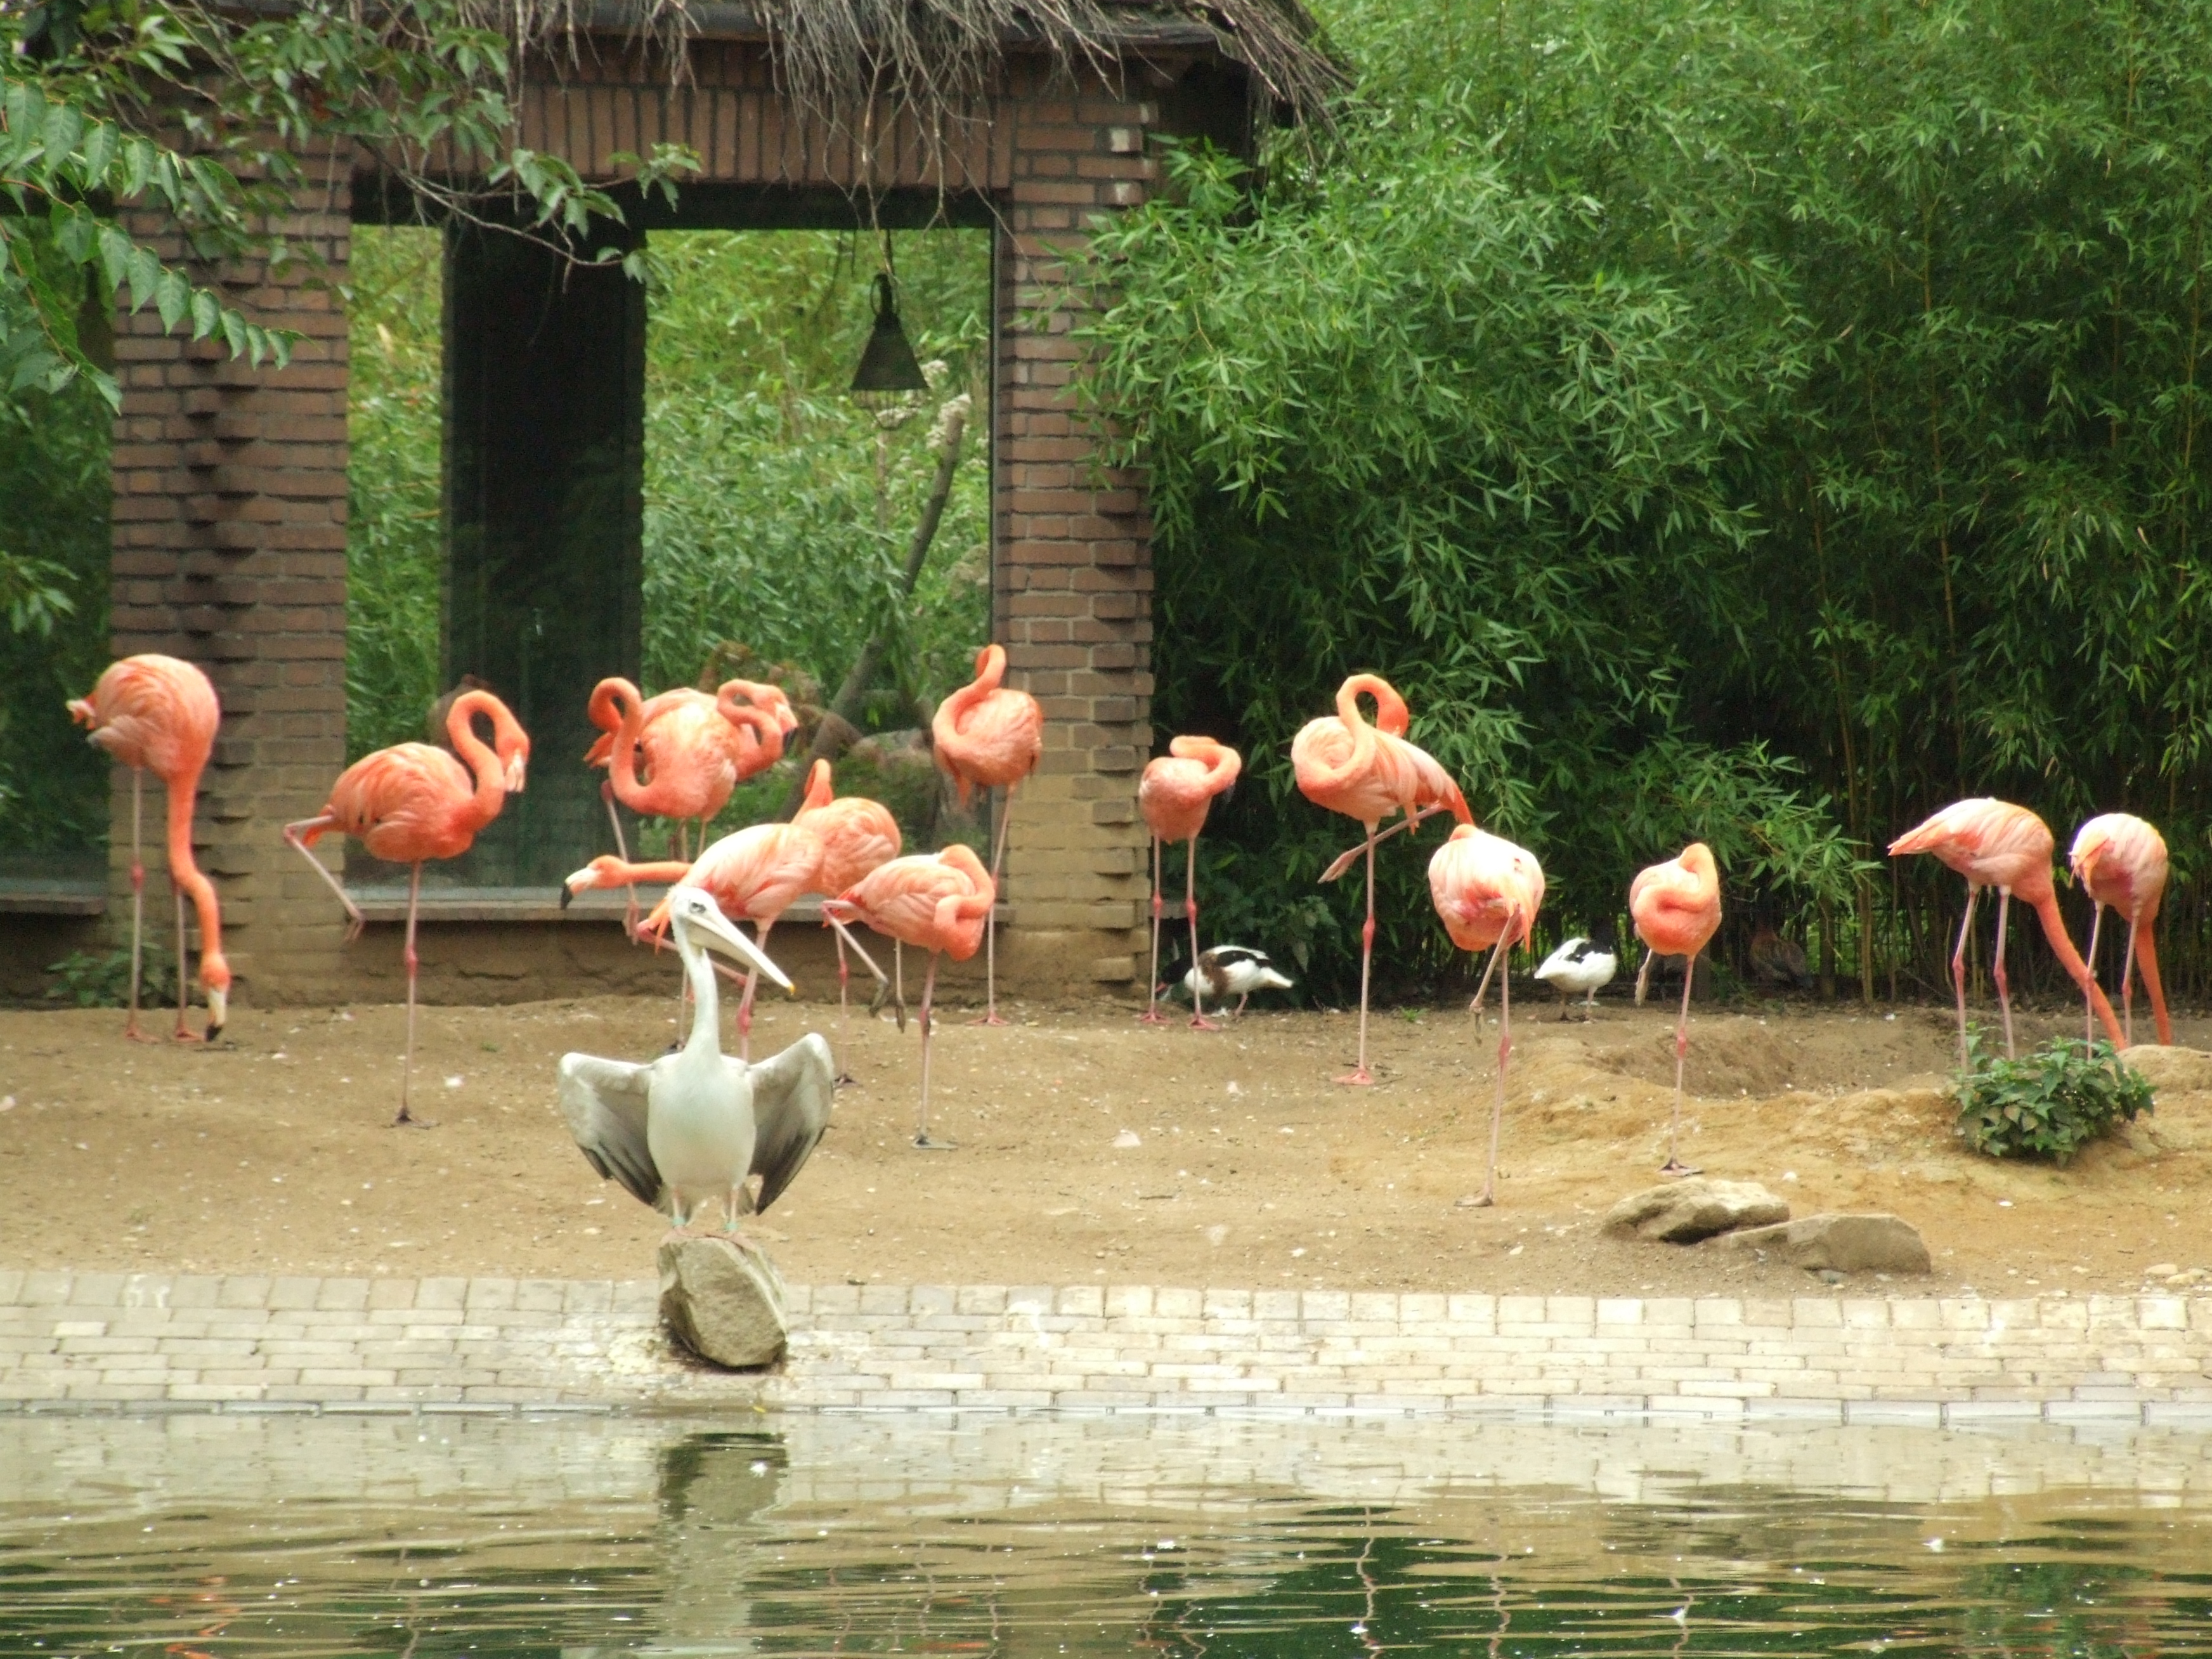 http://upload.wikimedia.org/wikipedia/commons/b/bb/Flamingos_und_Pelikan.jpg